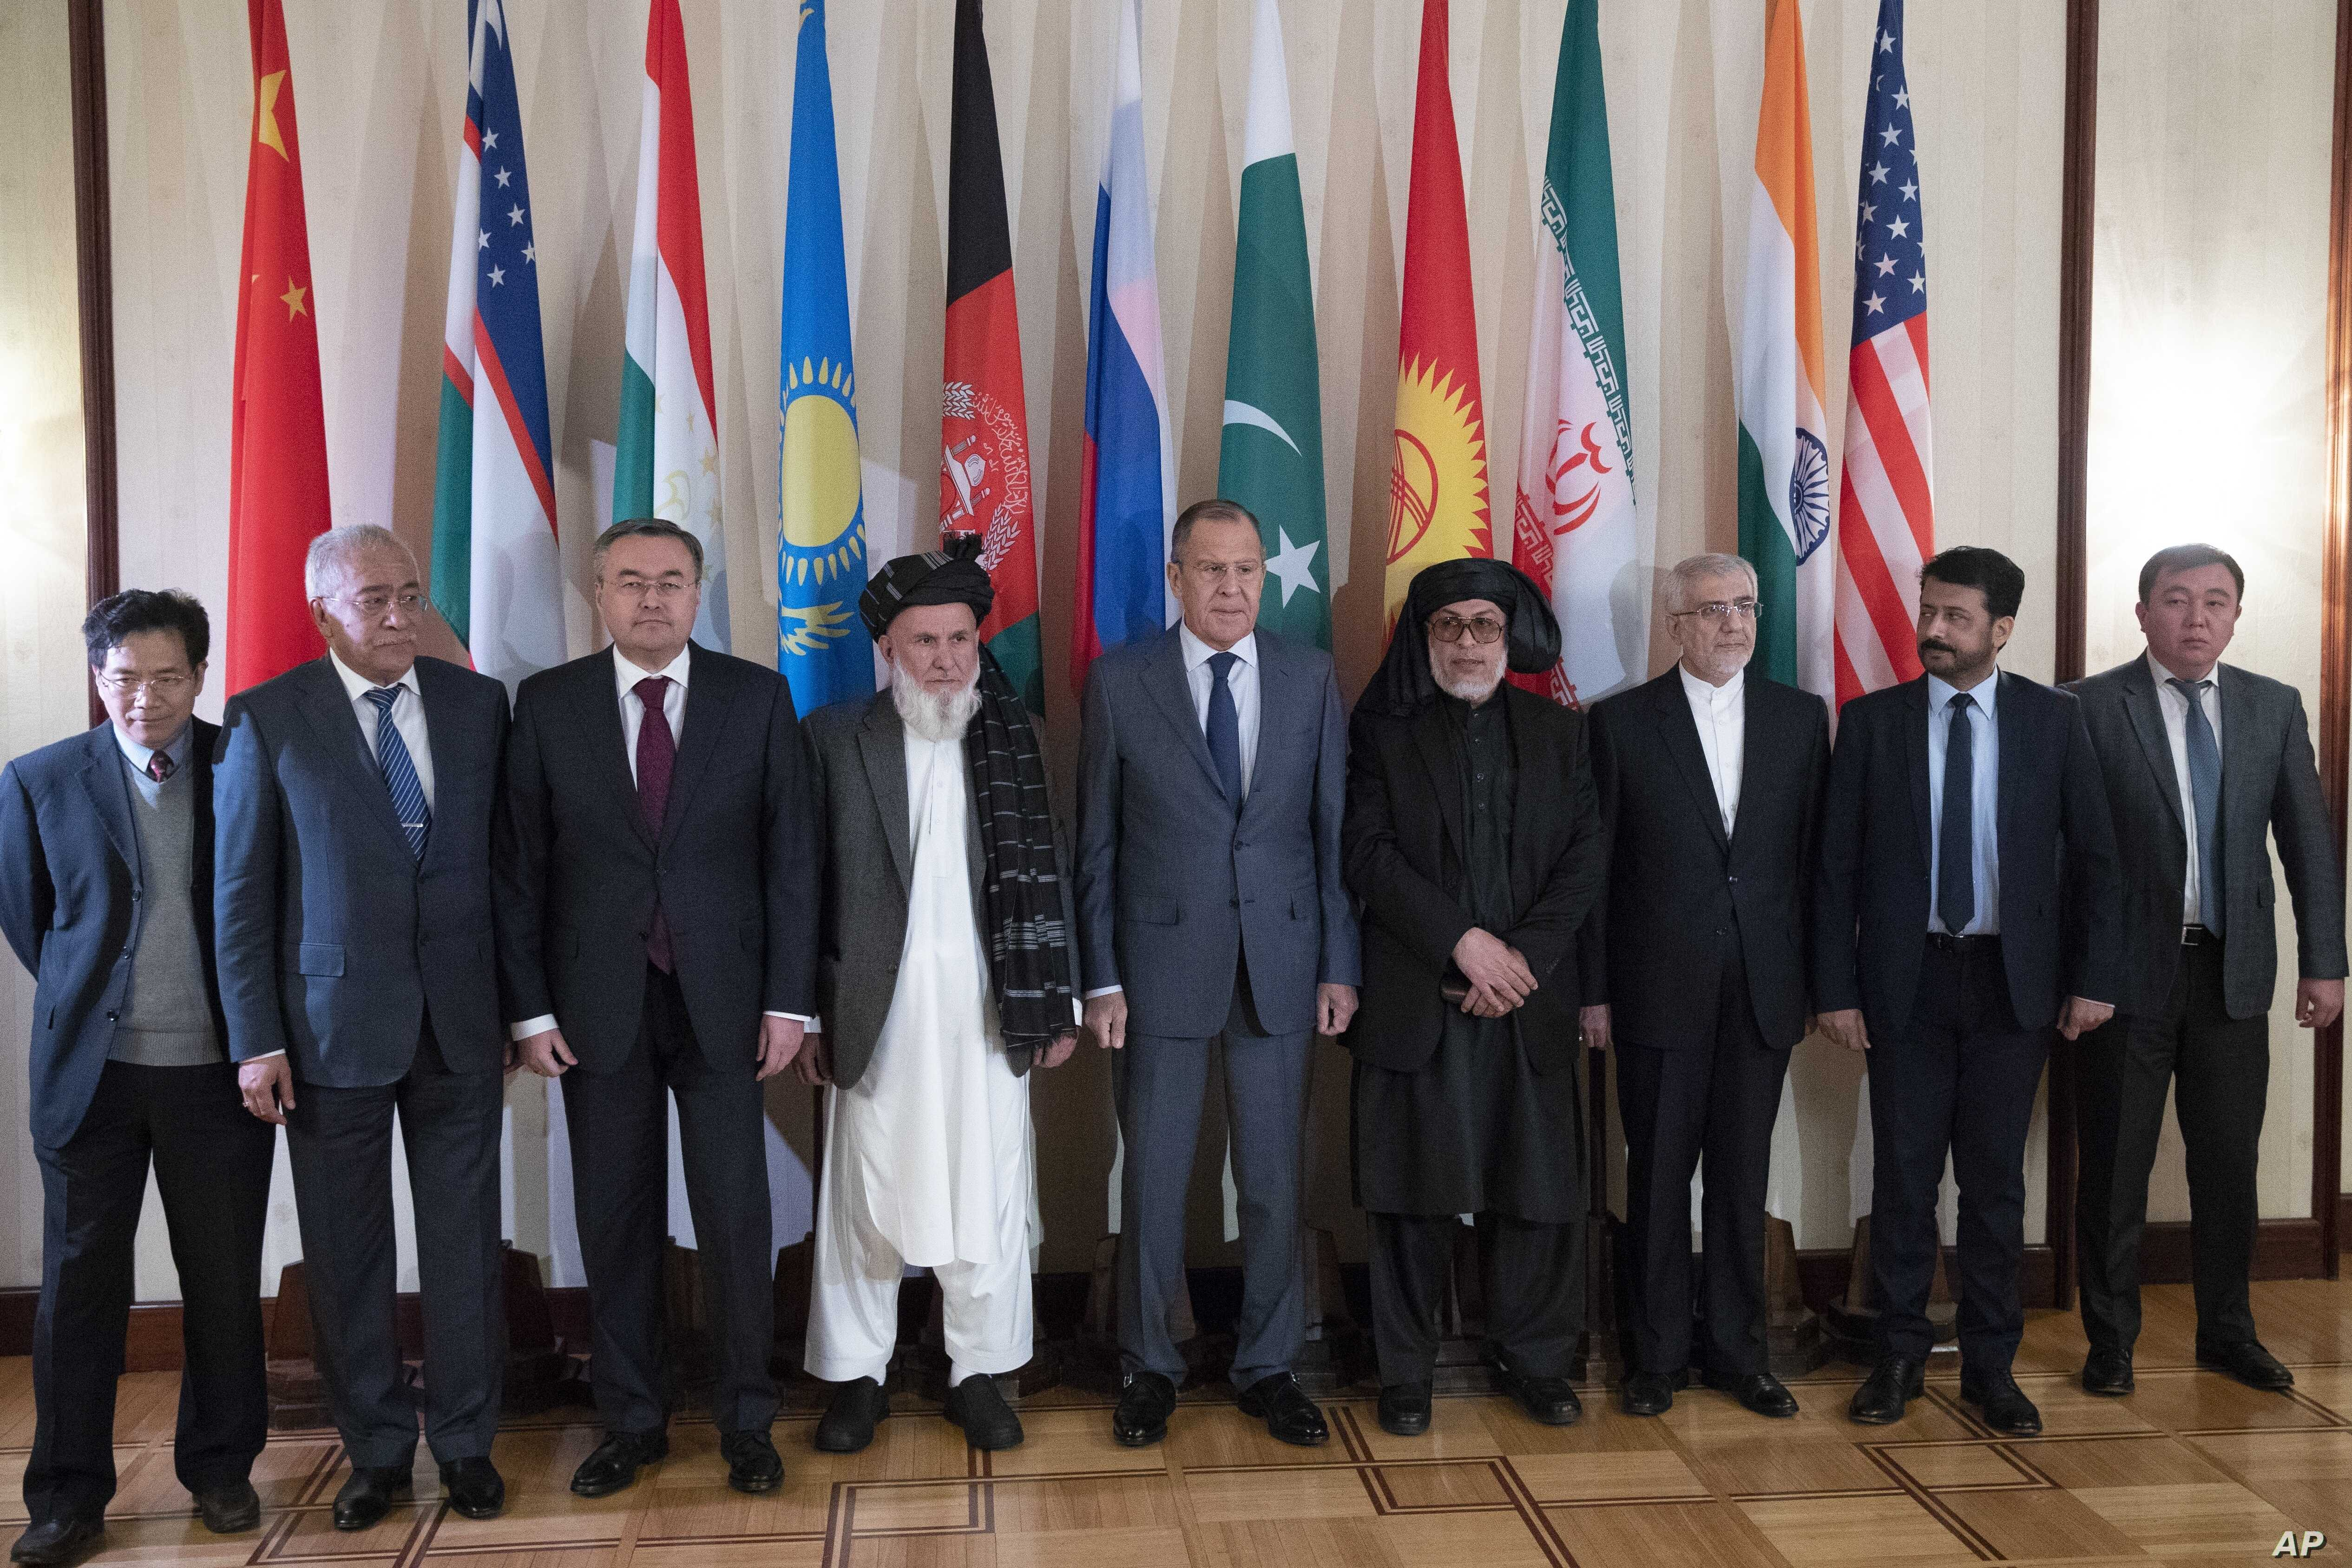 Russian Foreign Minister Sergey Lavrov (C) poses for a photo with the participants of the conference on Afghanistan bringing together representatives of the Afghan authorities and the Taliban in Moscow, Russia, Nov. 9, 2018.